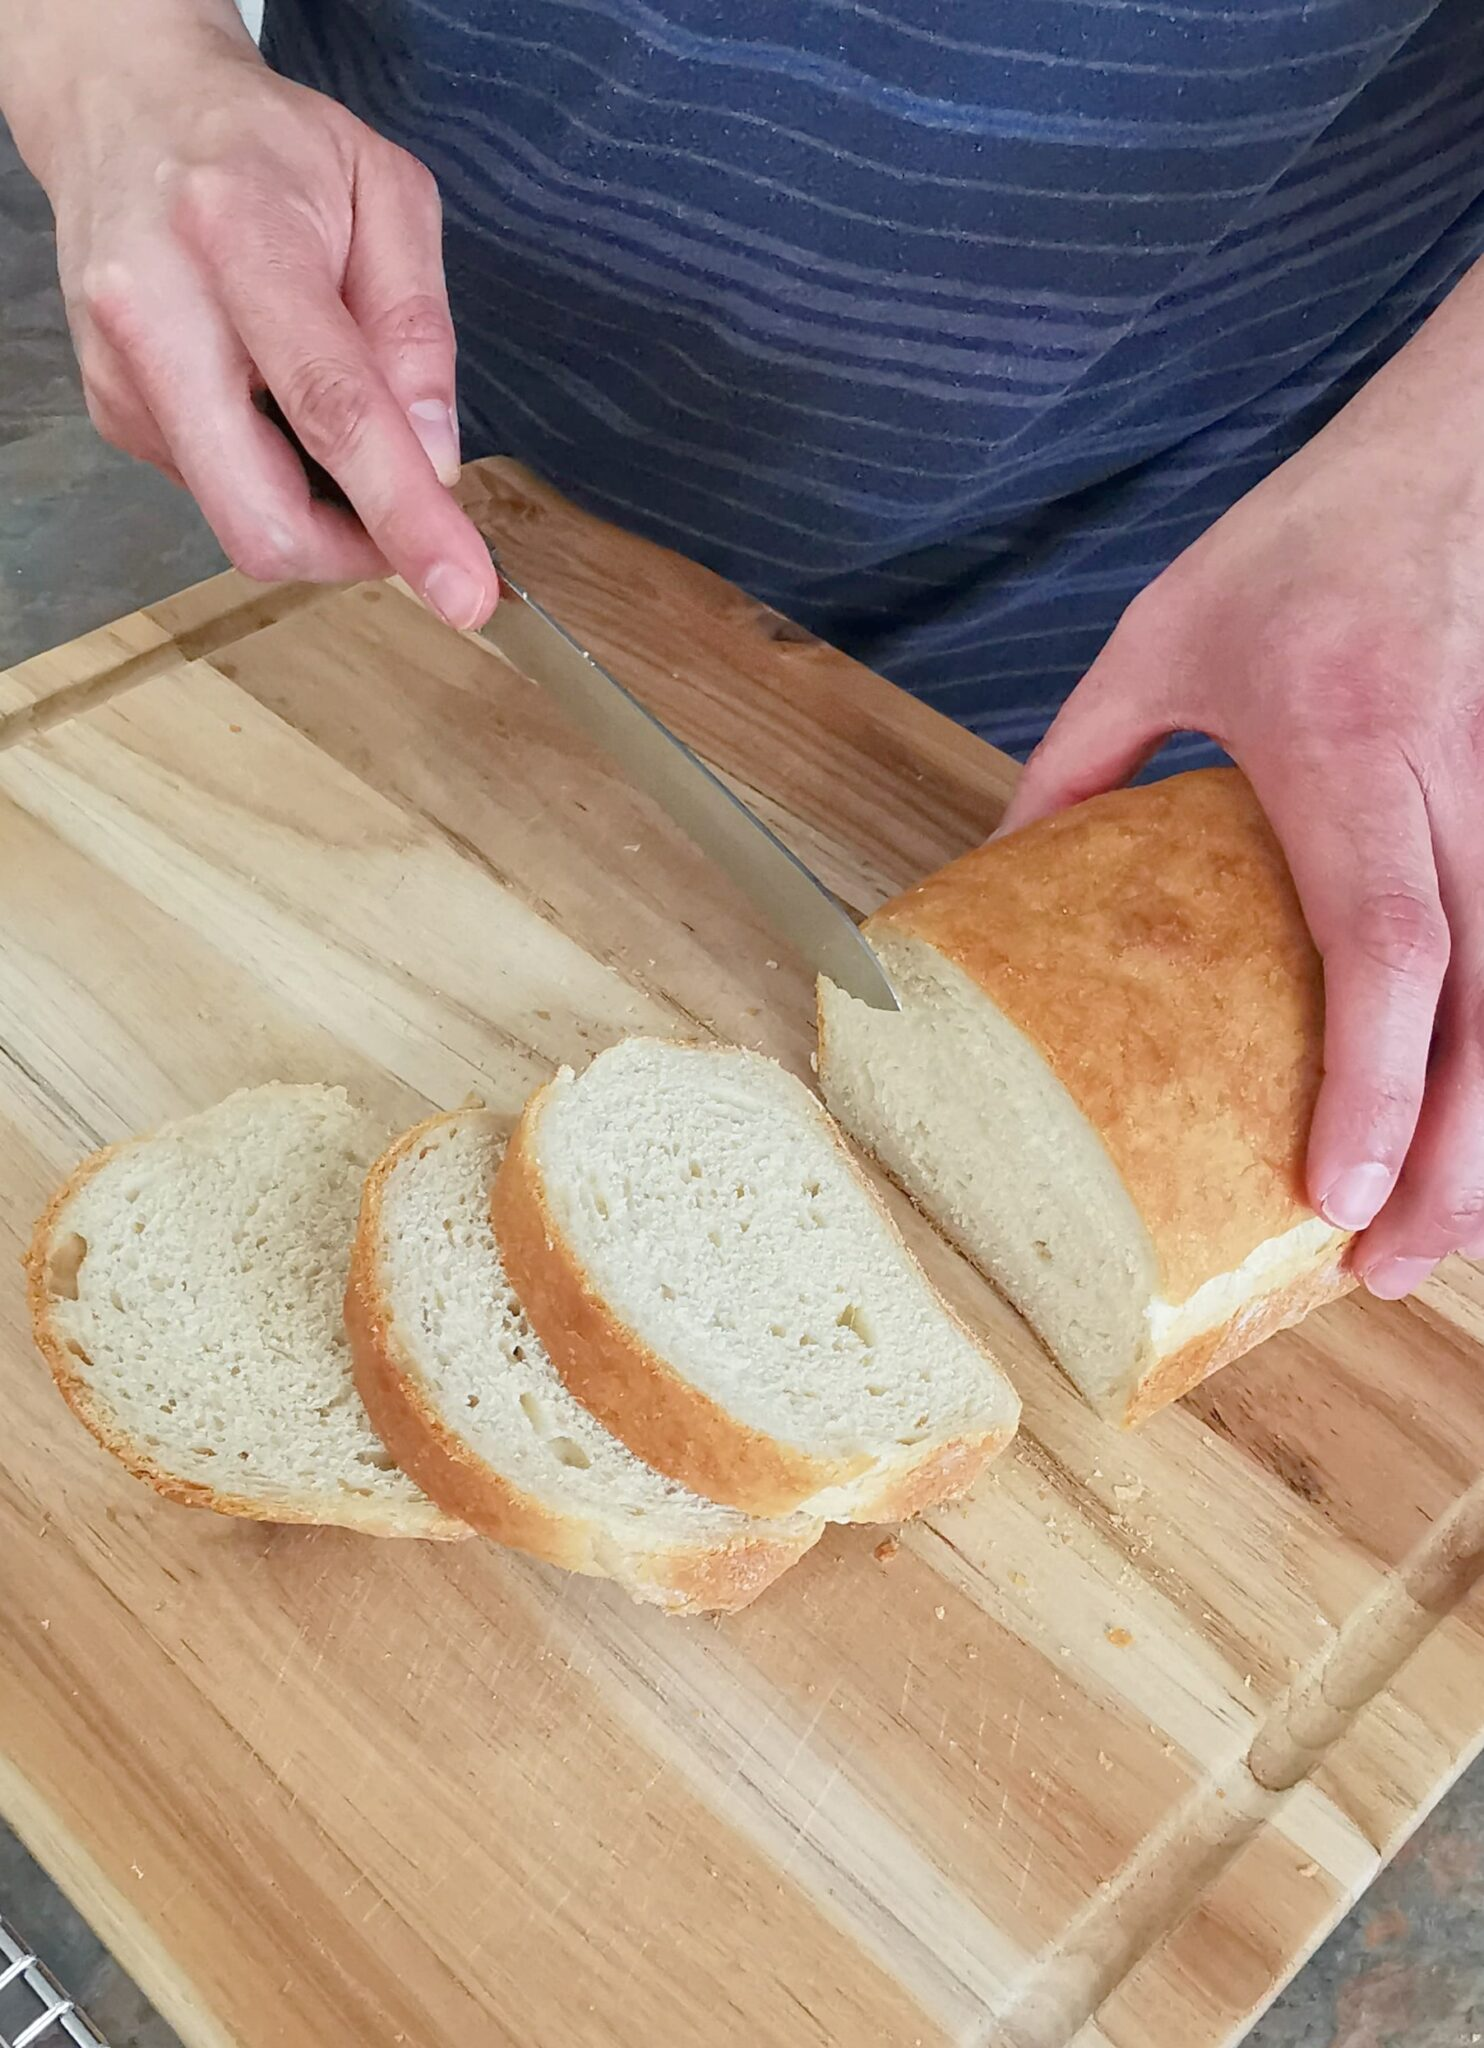 Bread being cut into slices.